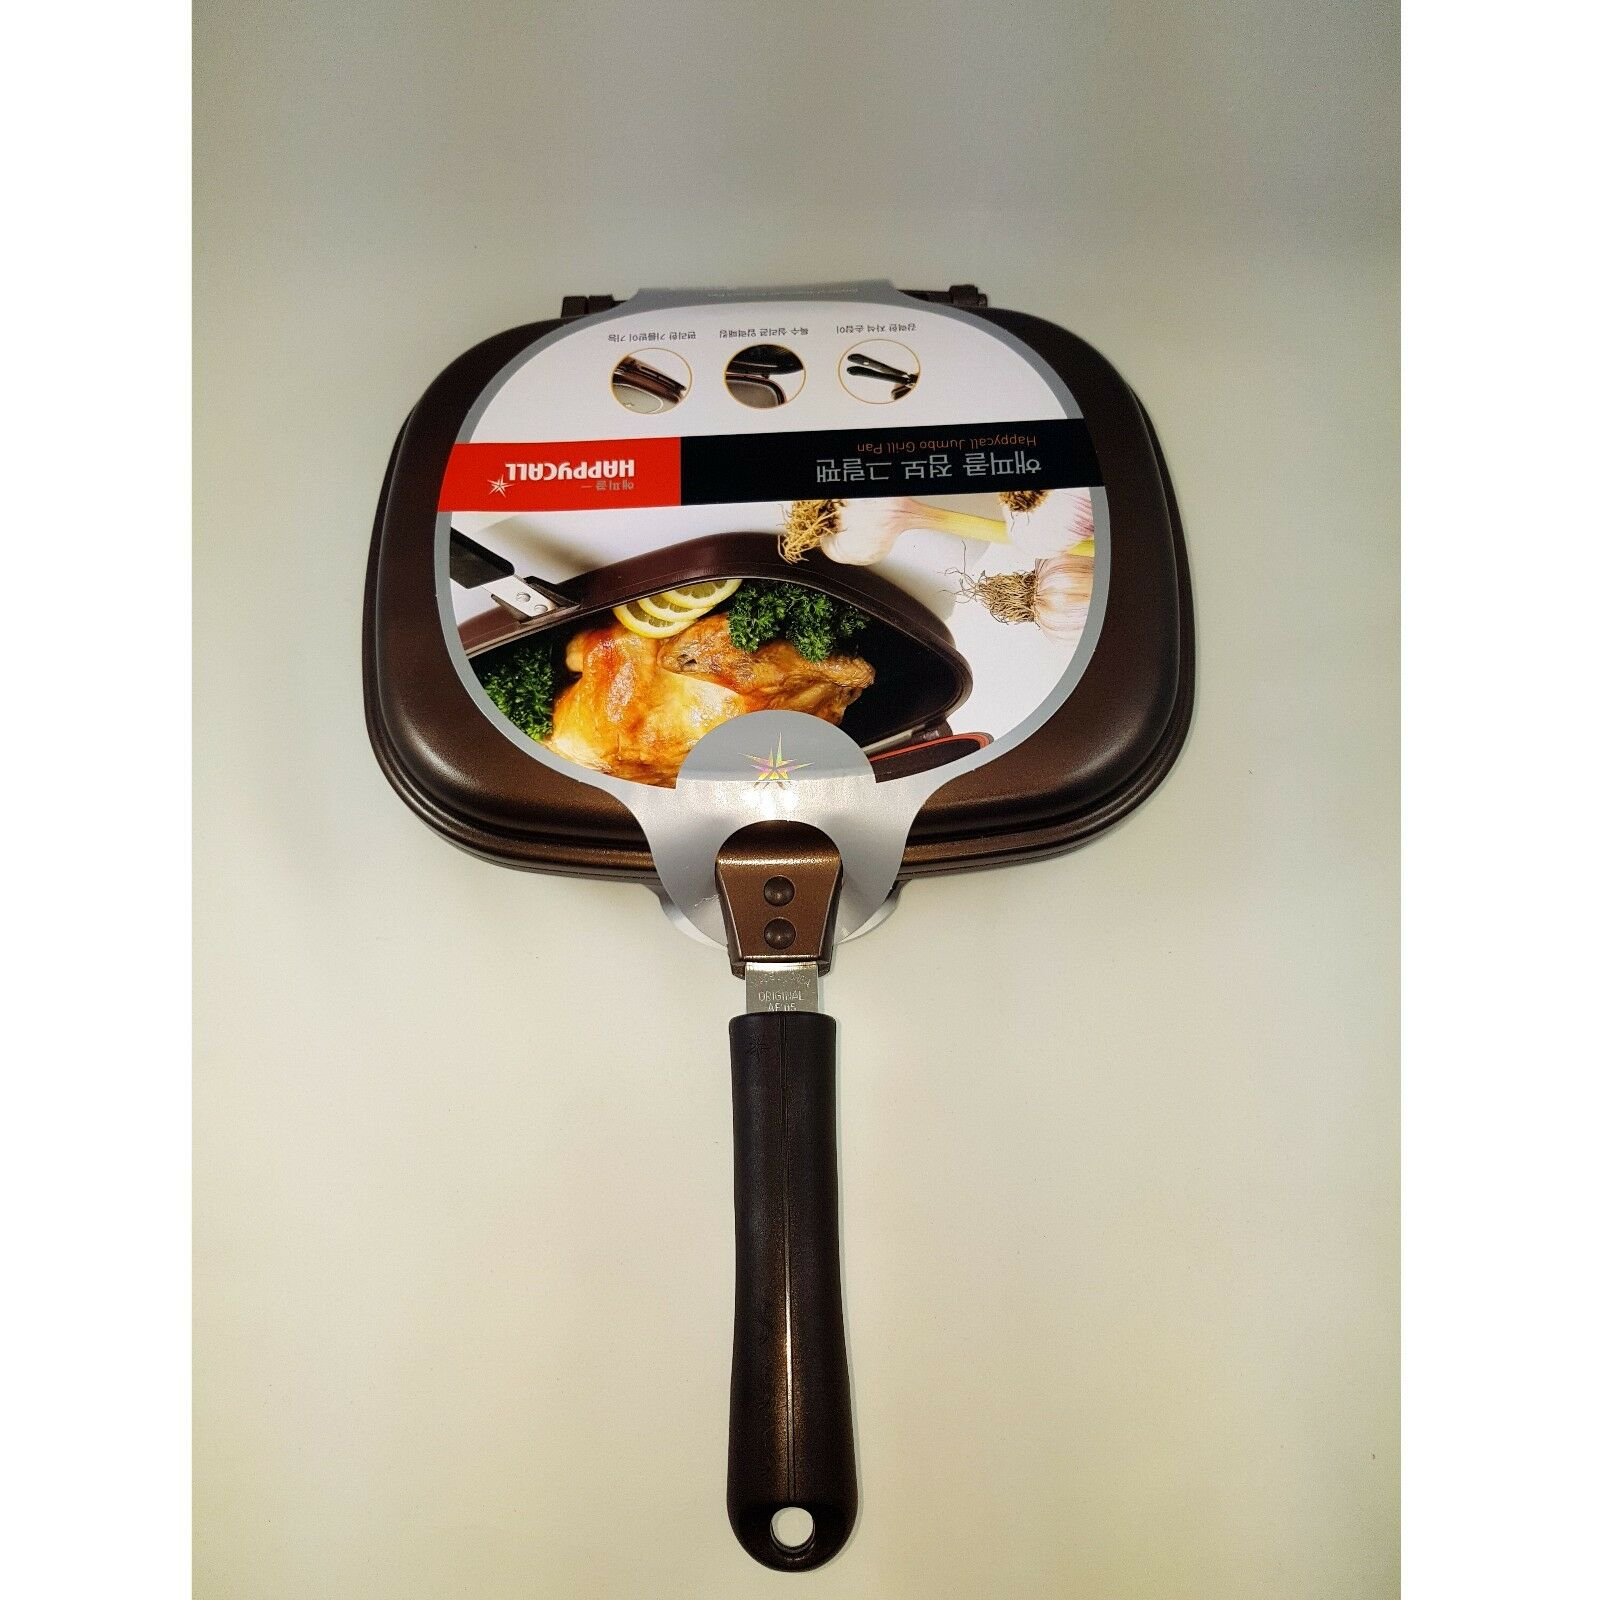 Happycall Nonstick Double Sided Pressure Jumbo Titanium